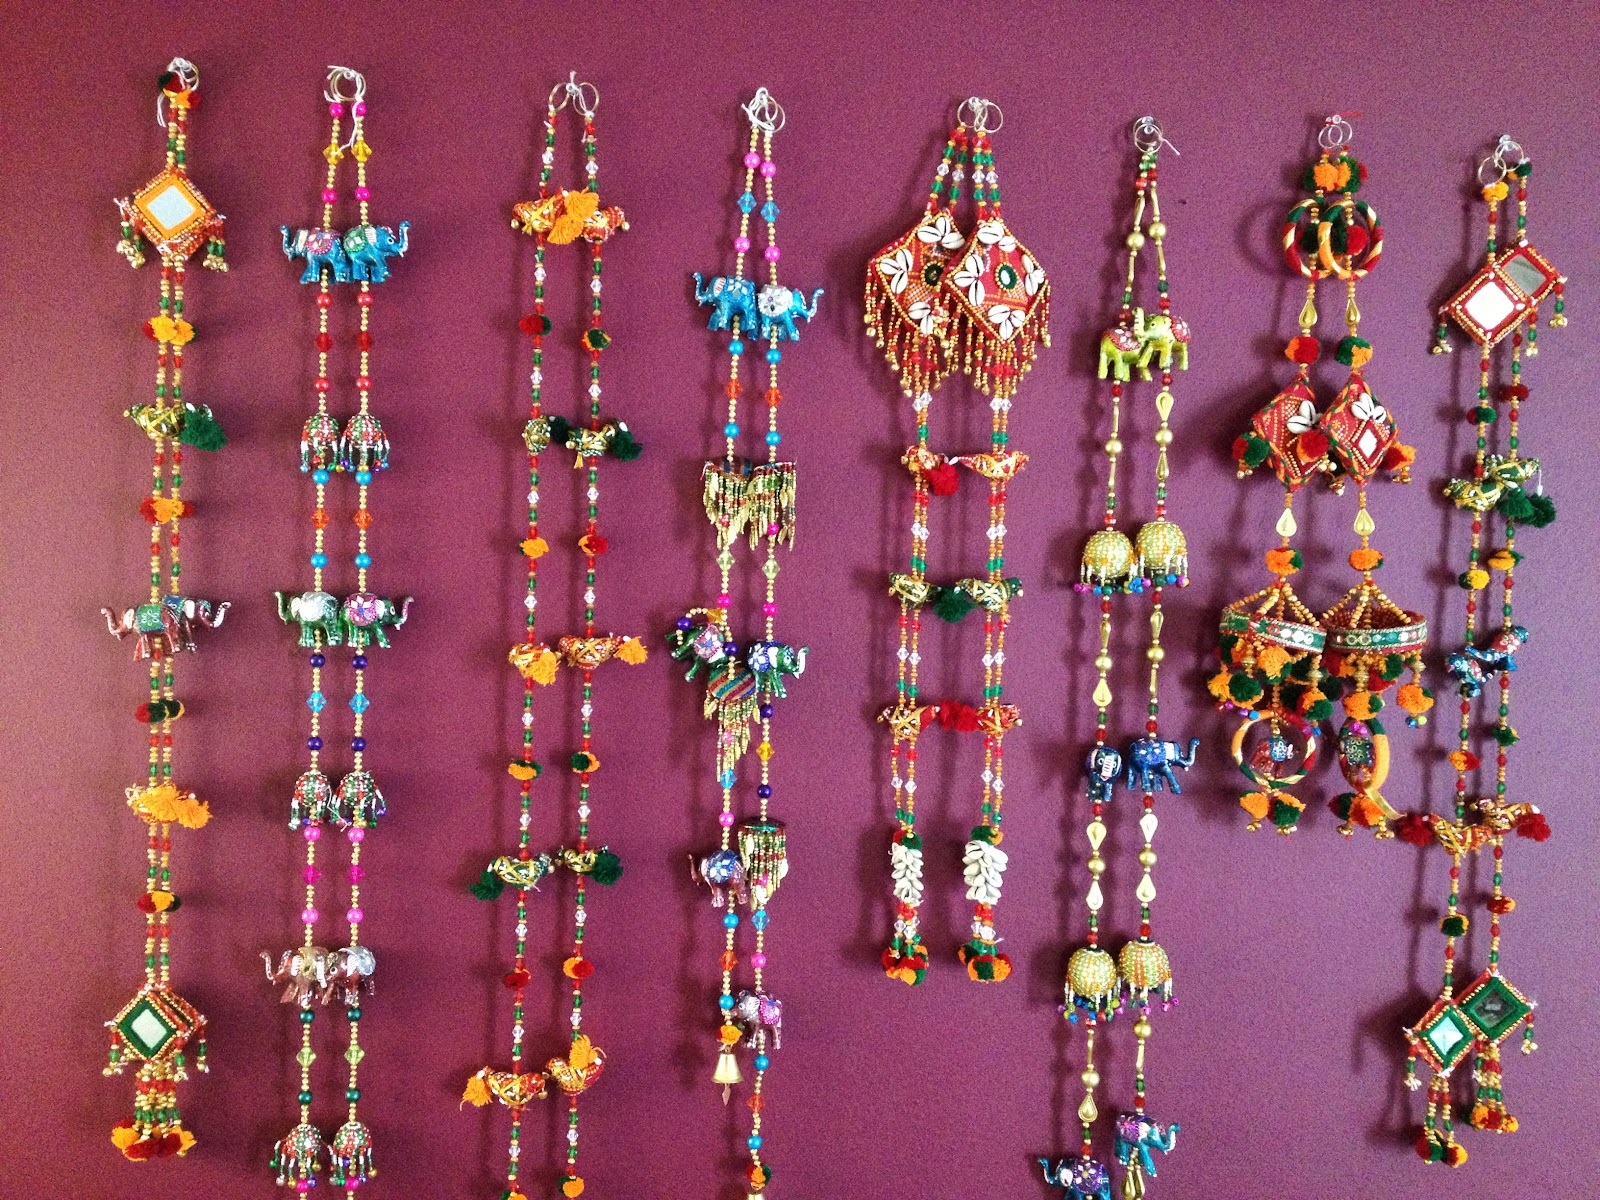 Wall Hanging Craft Design : Indian traditional dresses and wall designs rajasthani